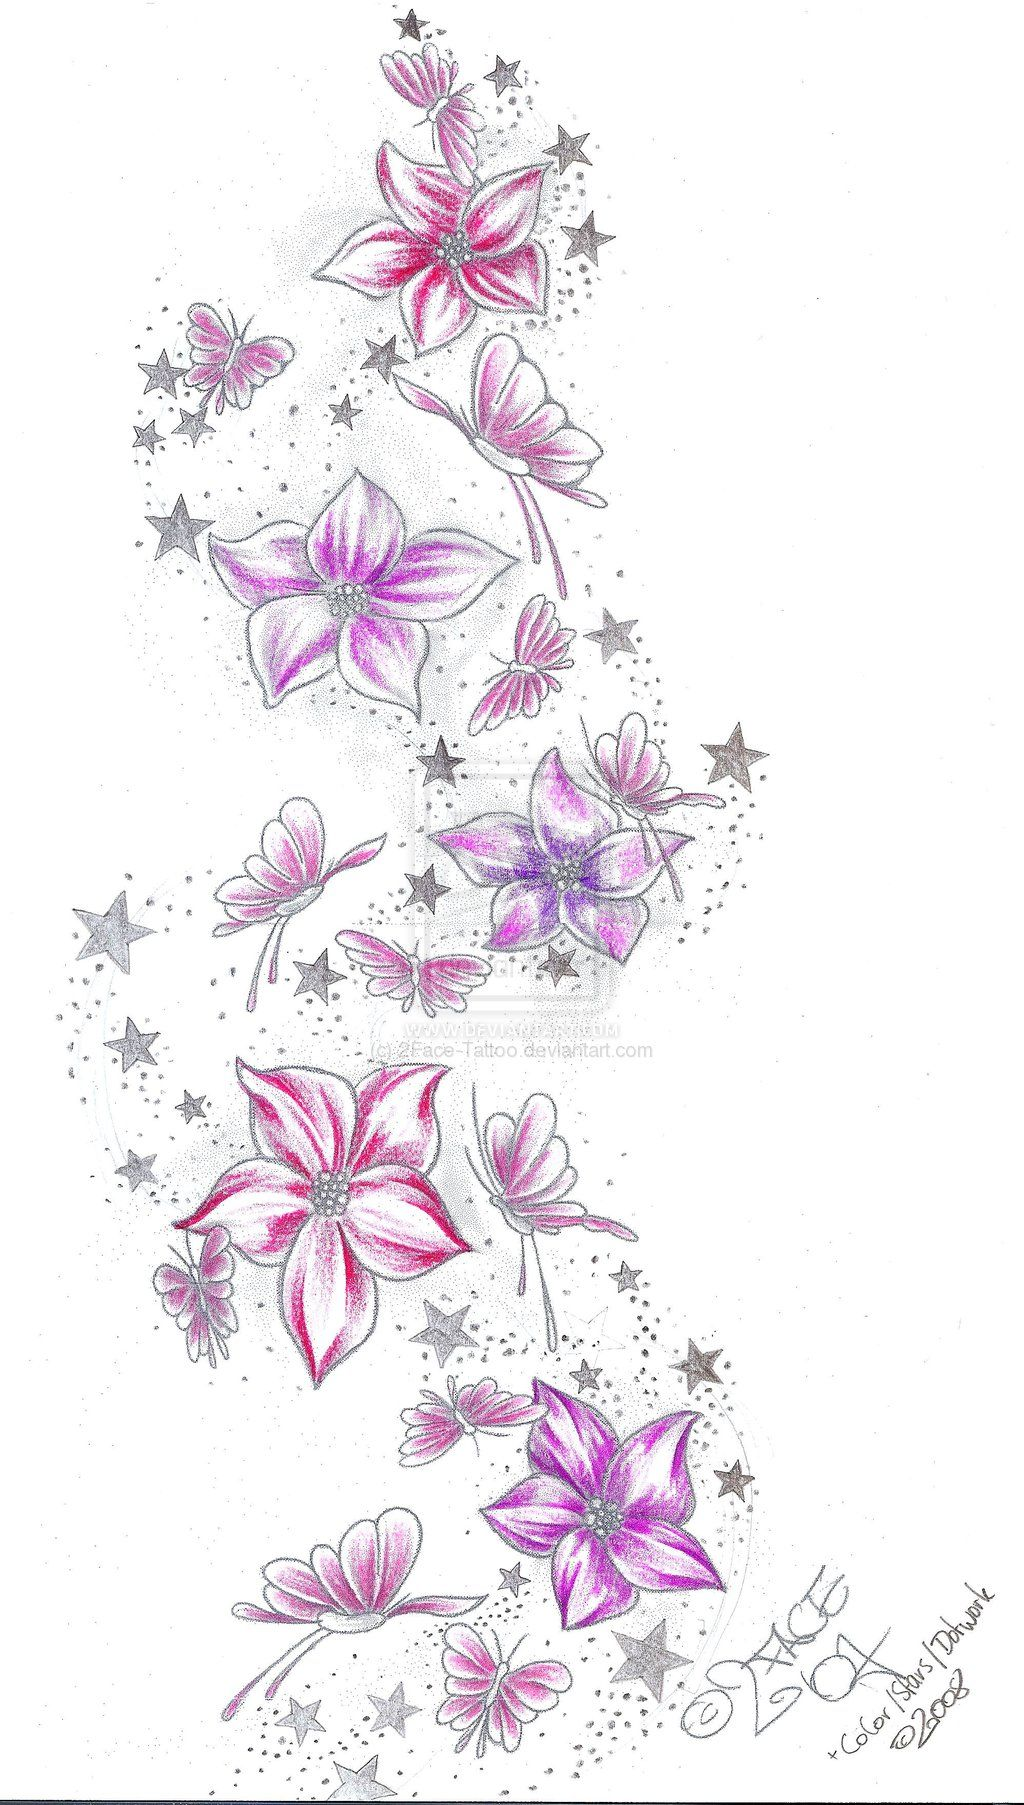 037f8595a Stars Flower Butterflies Color by 2Face-Tattoo.deviantart.com on @deviantART